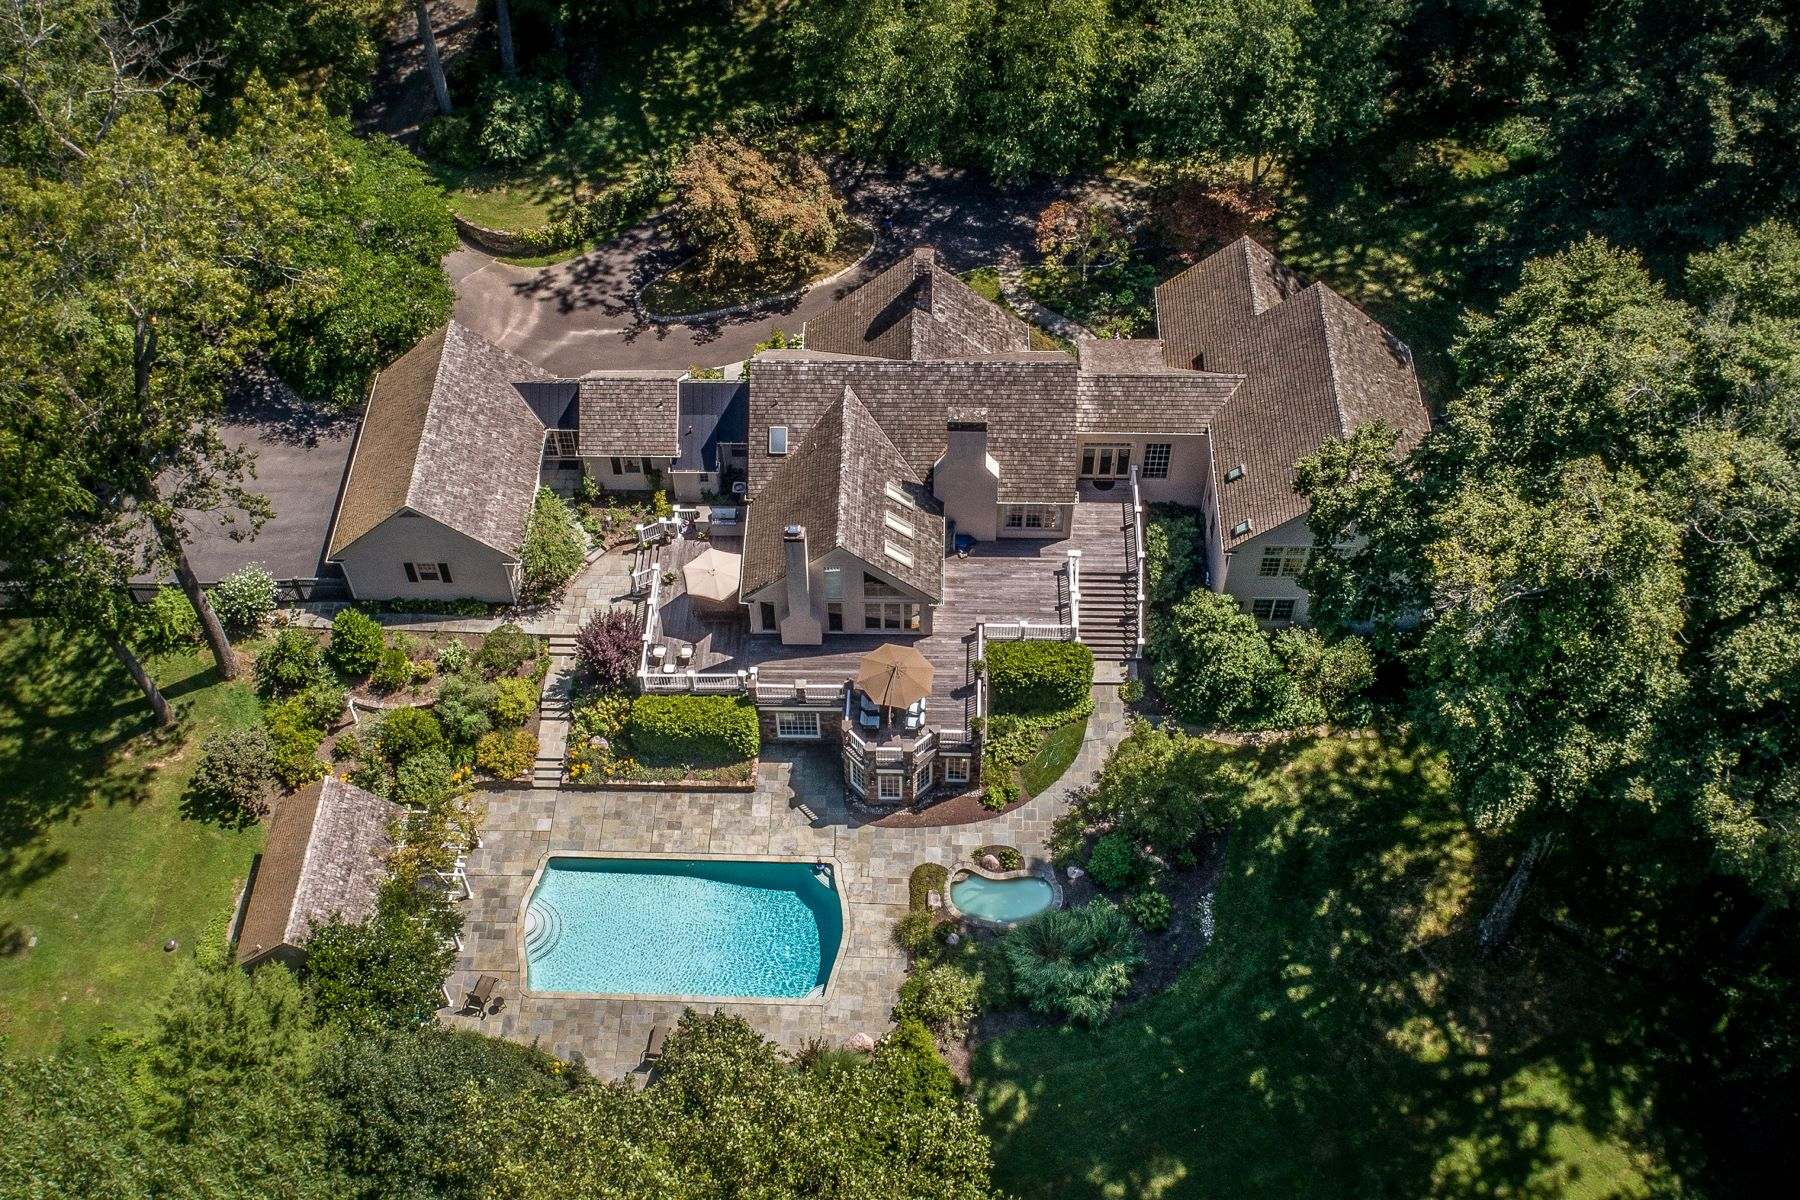 Single Family Homes for Sale at Perfectly Private Paradise 6731 PAXSON RD, New Hope, Pennsylvania 18938 United States